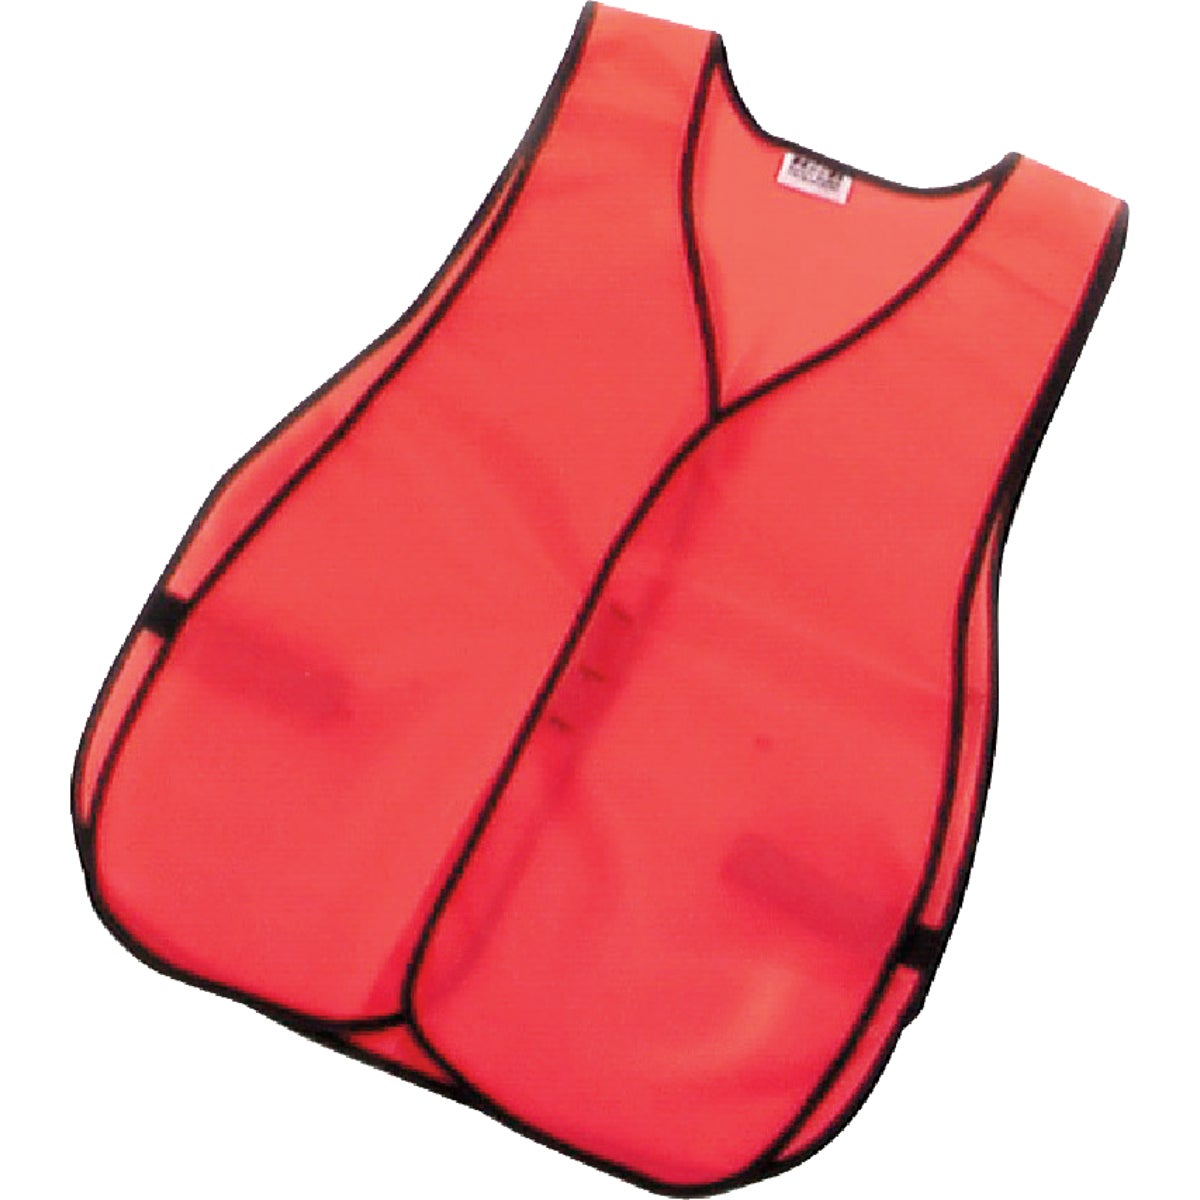 ORANGE SAFETY VEST - 818040 by Msa Safety